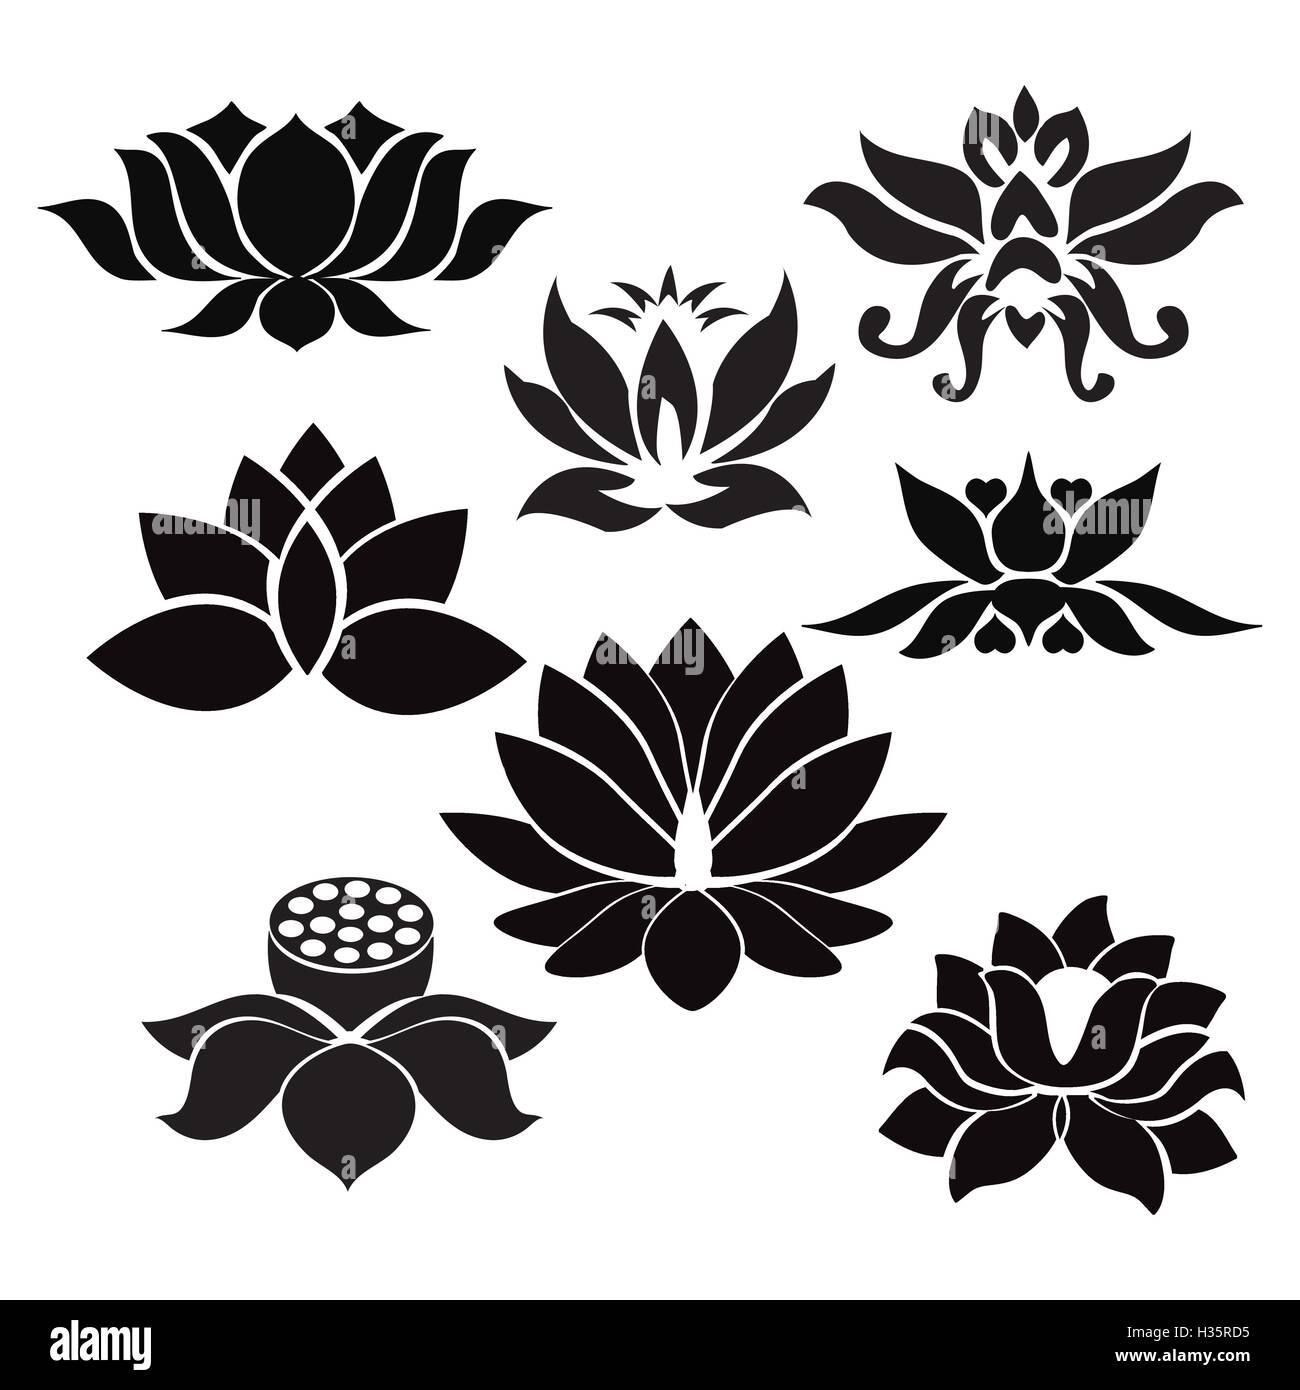 Lotus Flower Tattoo Stock Photos Lotus Flower Tattoo Stock Images